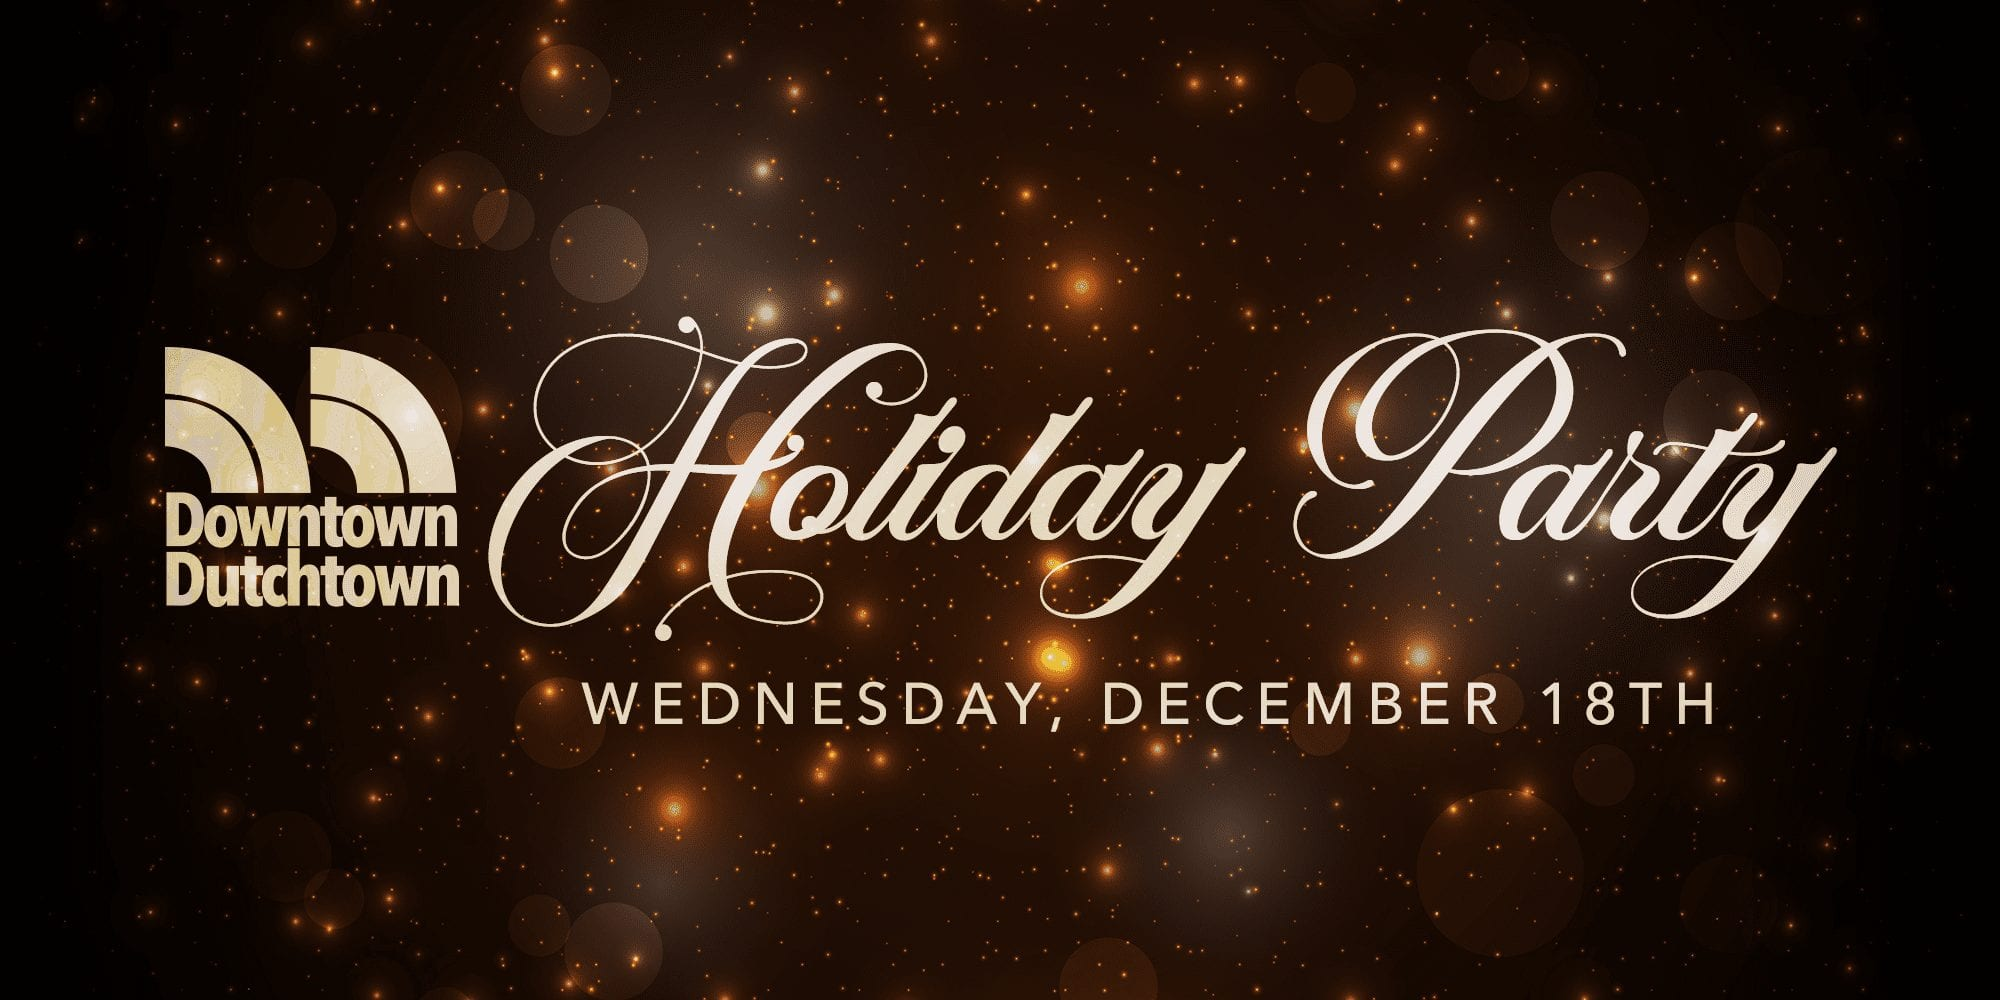 Downtown Dutchtown Holiday Party, Wednesday, December 18th.